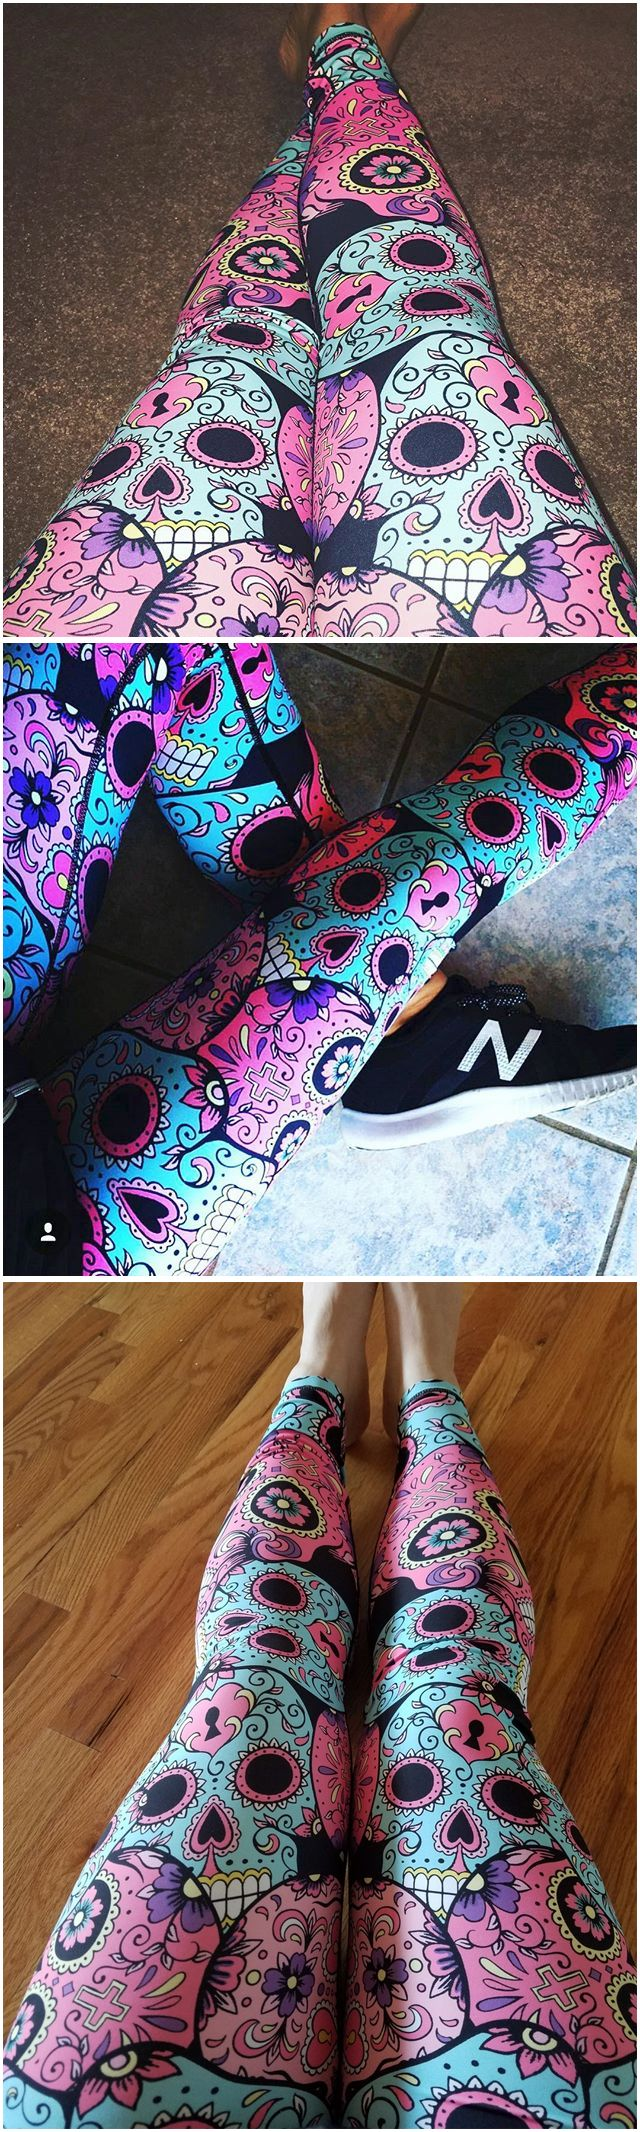 17 Best Images About Fashion On Pinterest Glitter Shoes Dvd Set